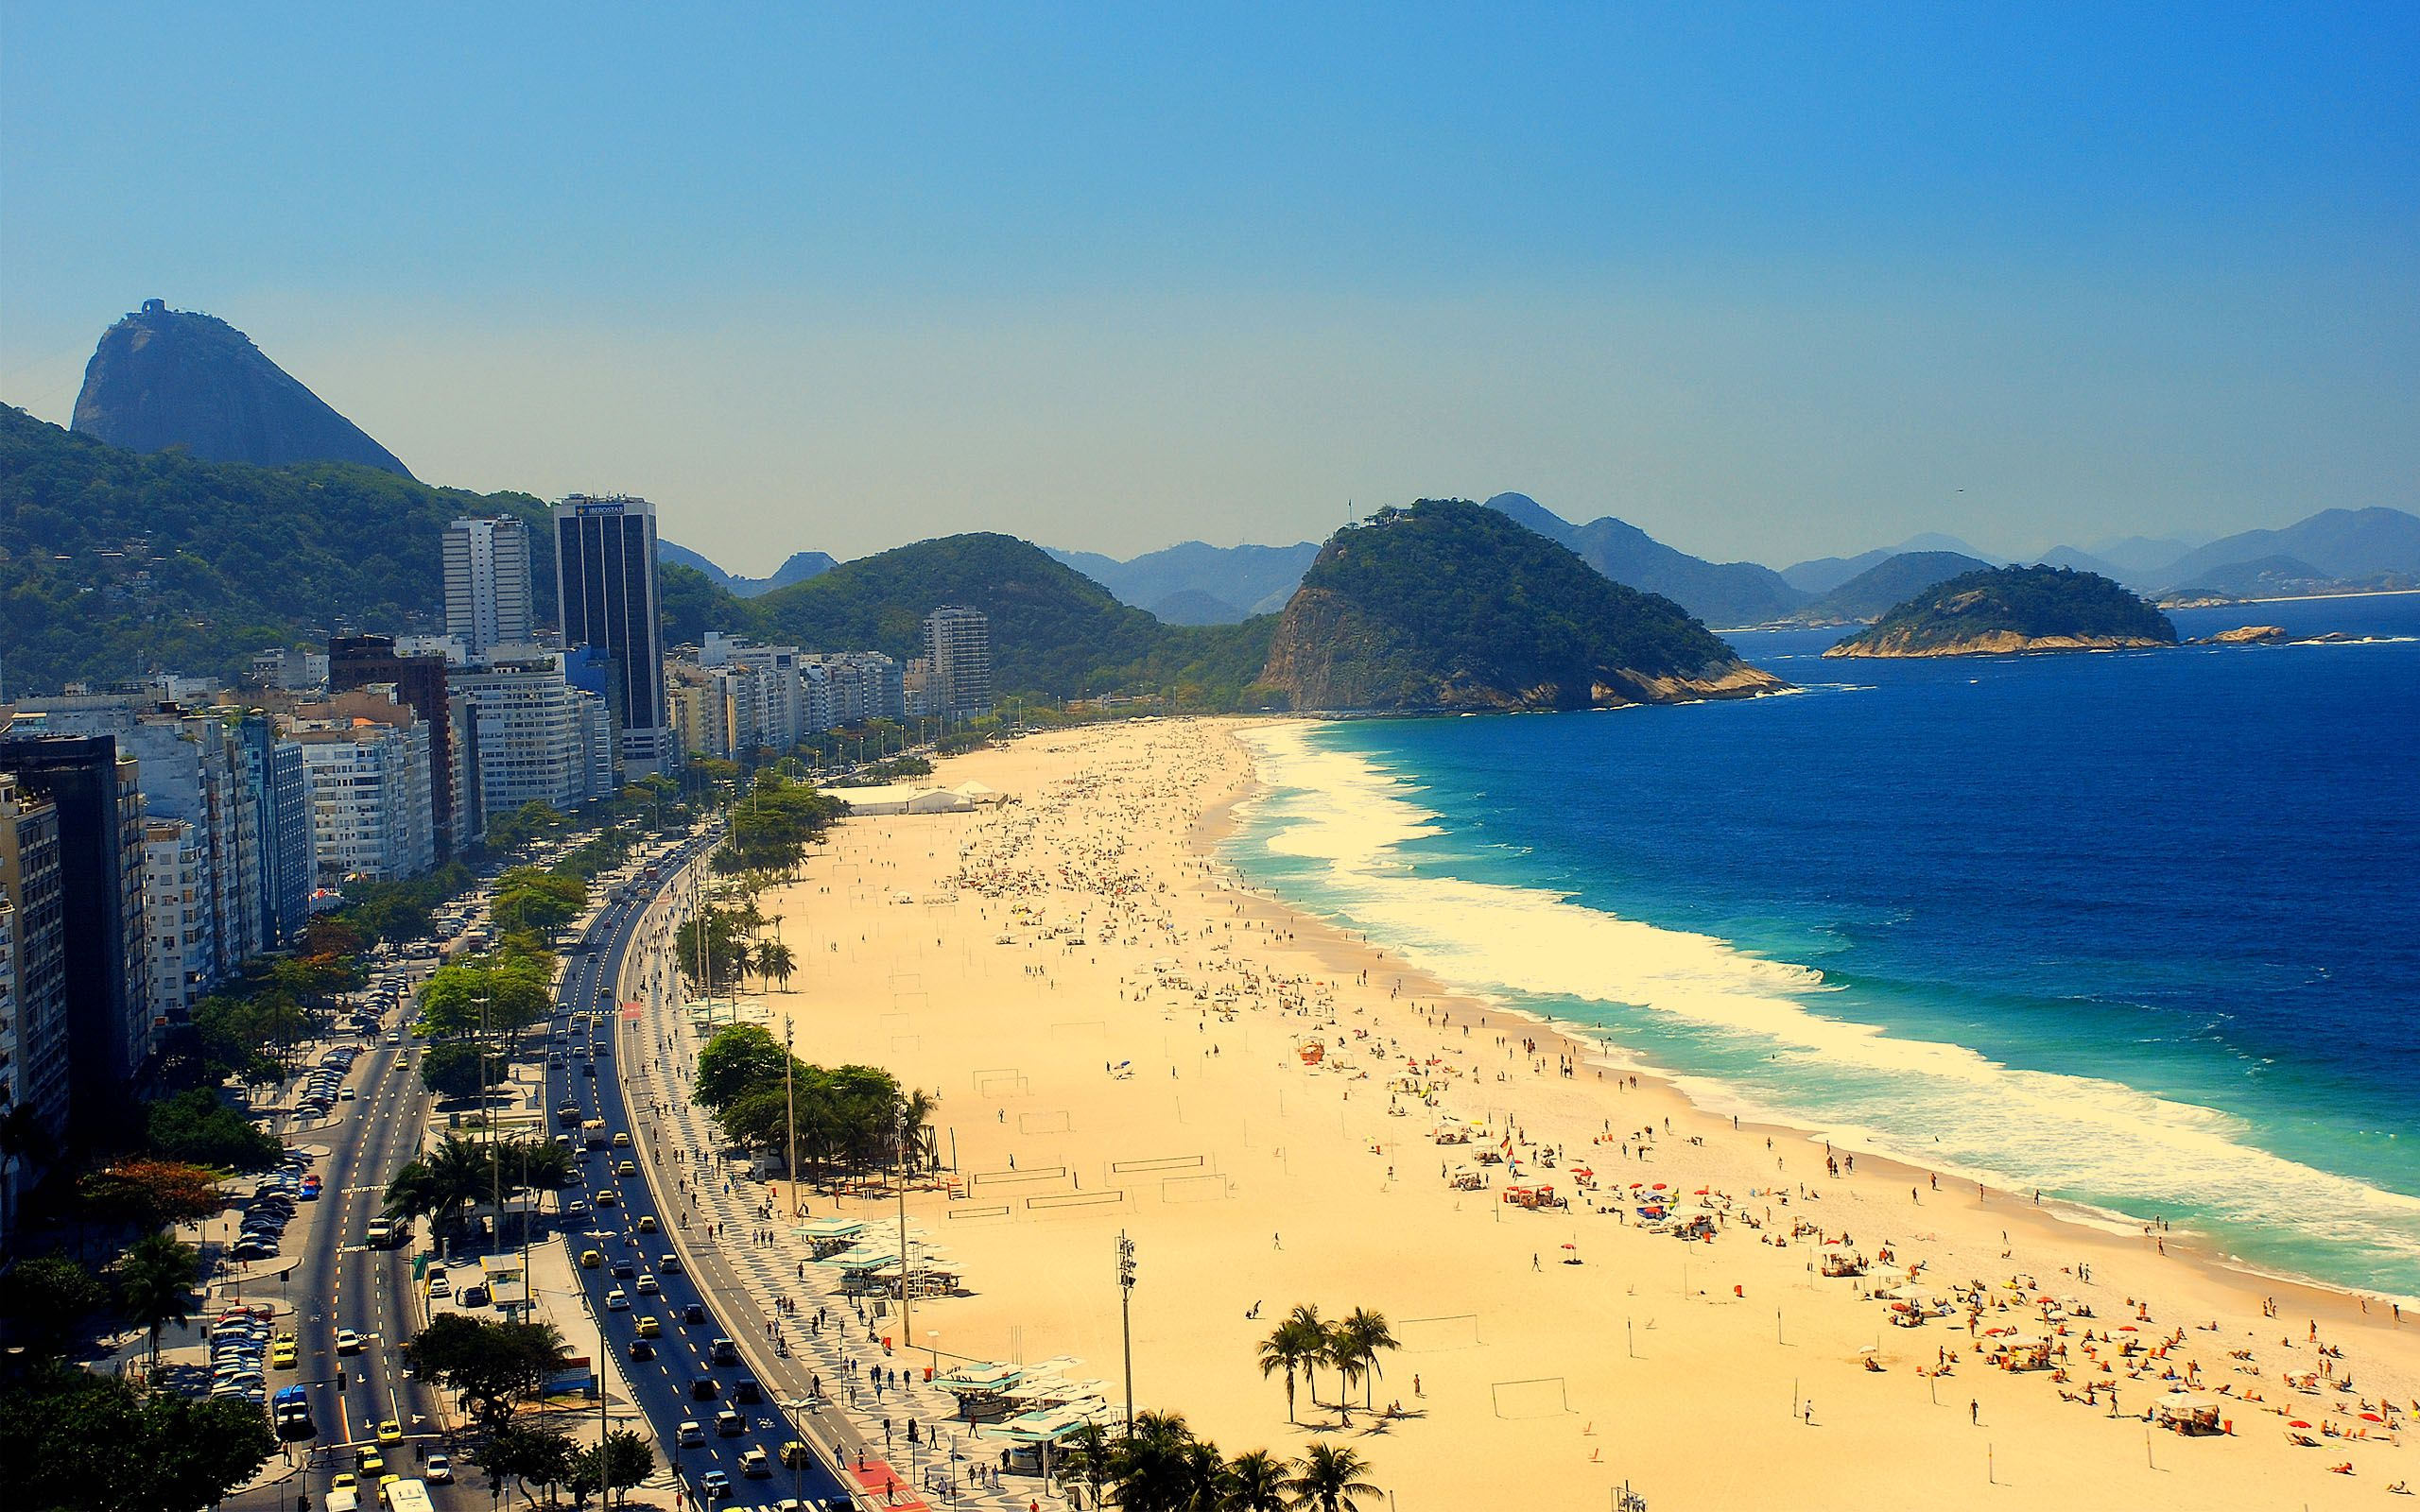 copacabana beach rio de janeiro city hd wallpapers top desktop background hd widescreen wallpaper of rio